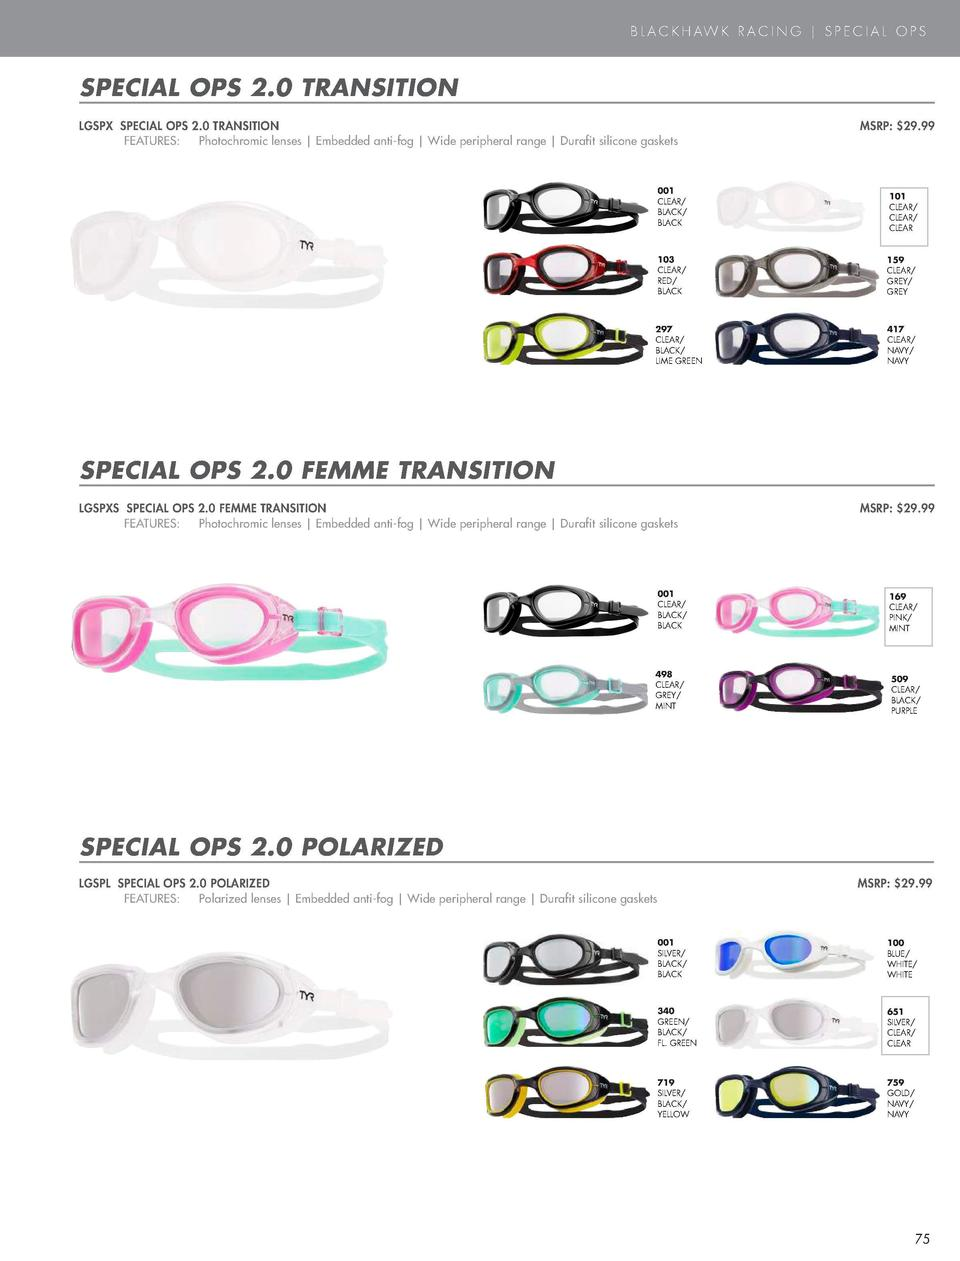 PERFORMANCE GOGGLES  B L A C K H AW K R A C I N G   S P E C I A L O P S  BLACKHAWK RACING FEMME  SPECIAL OPS 2.0 TRANSITIO...